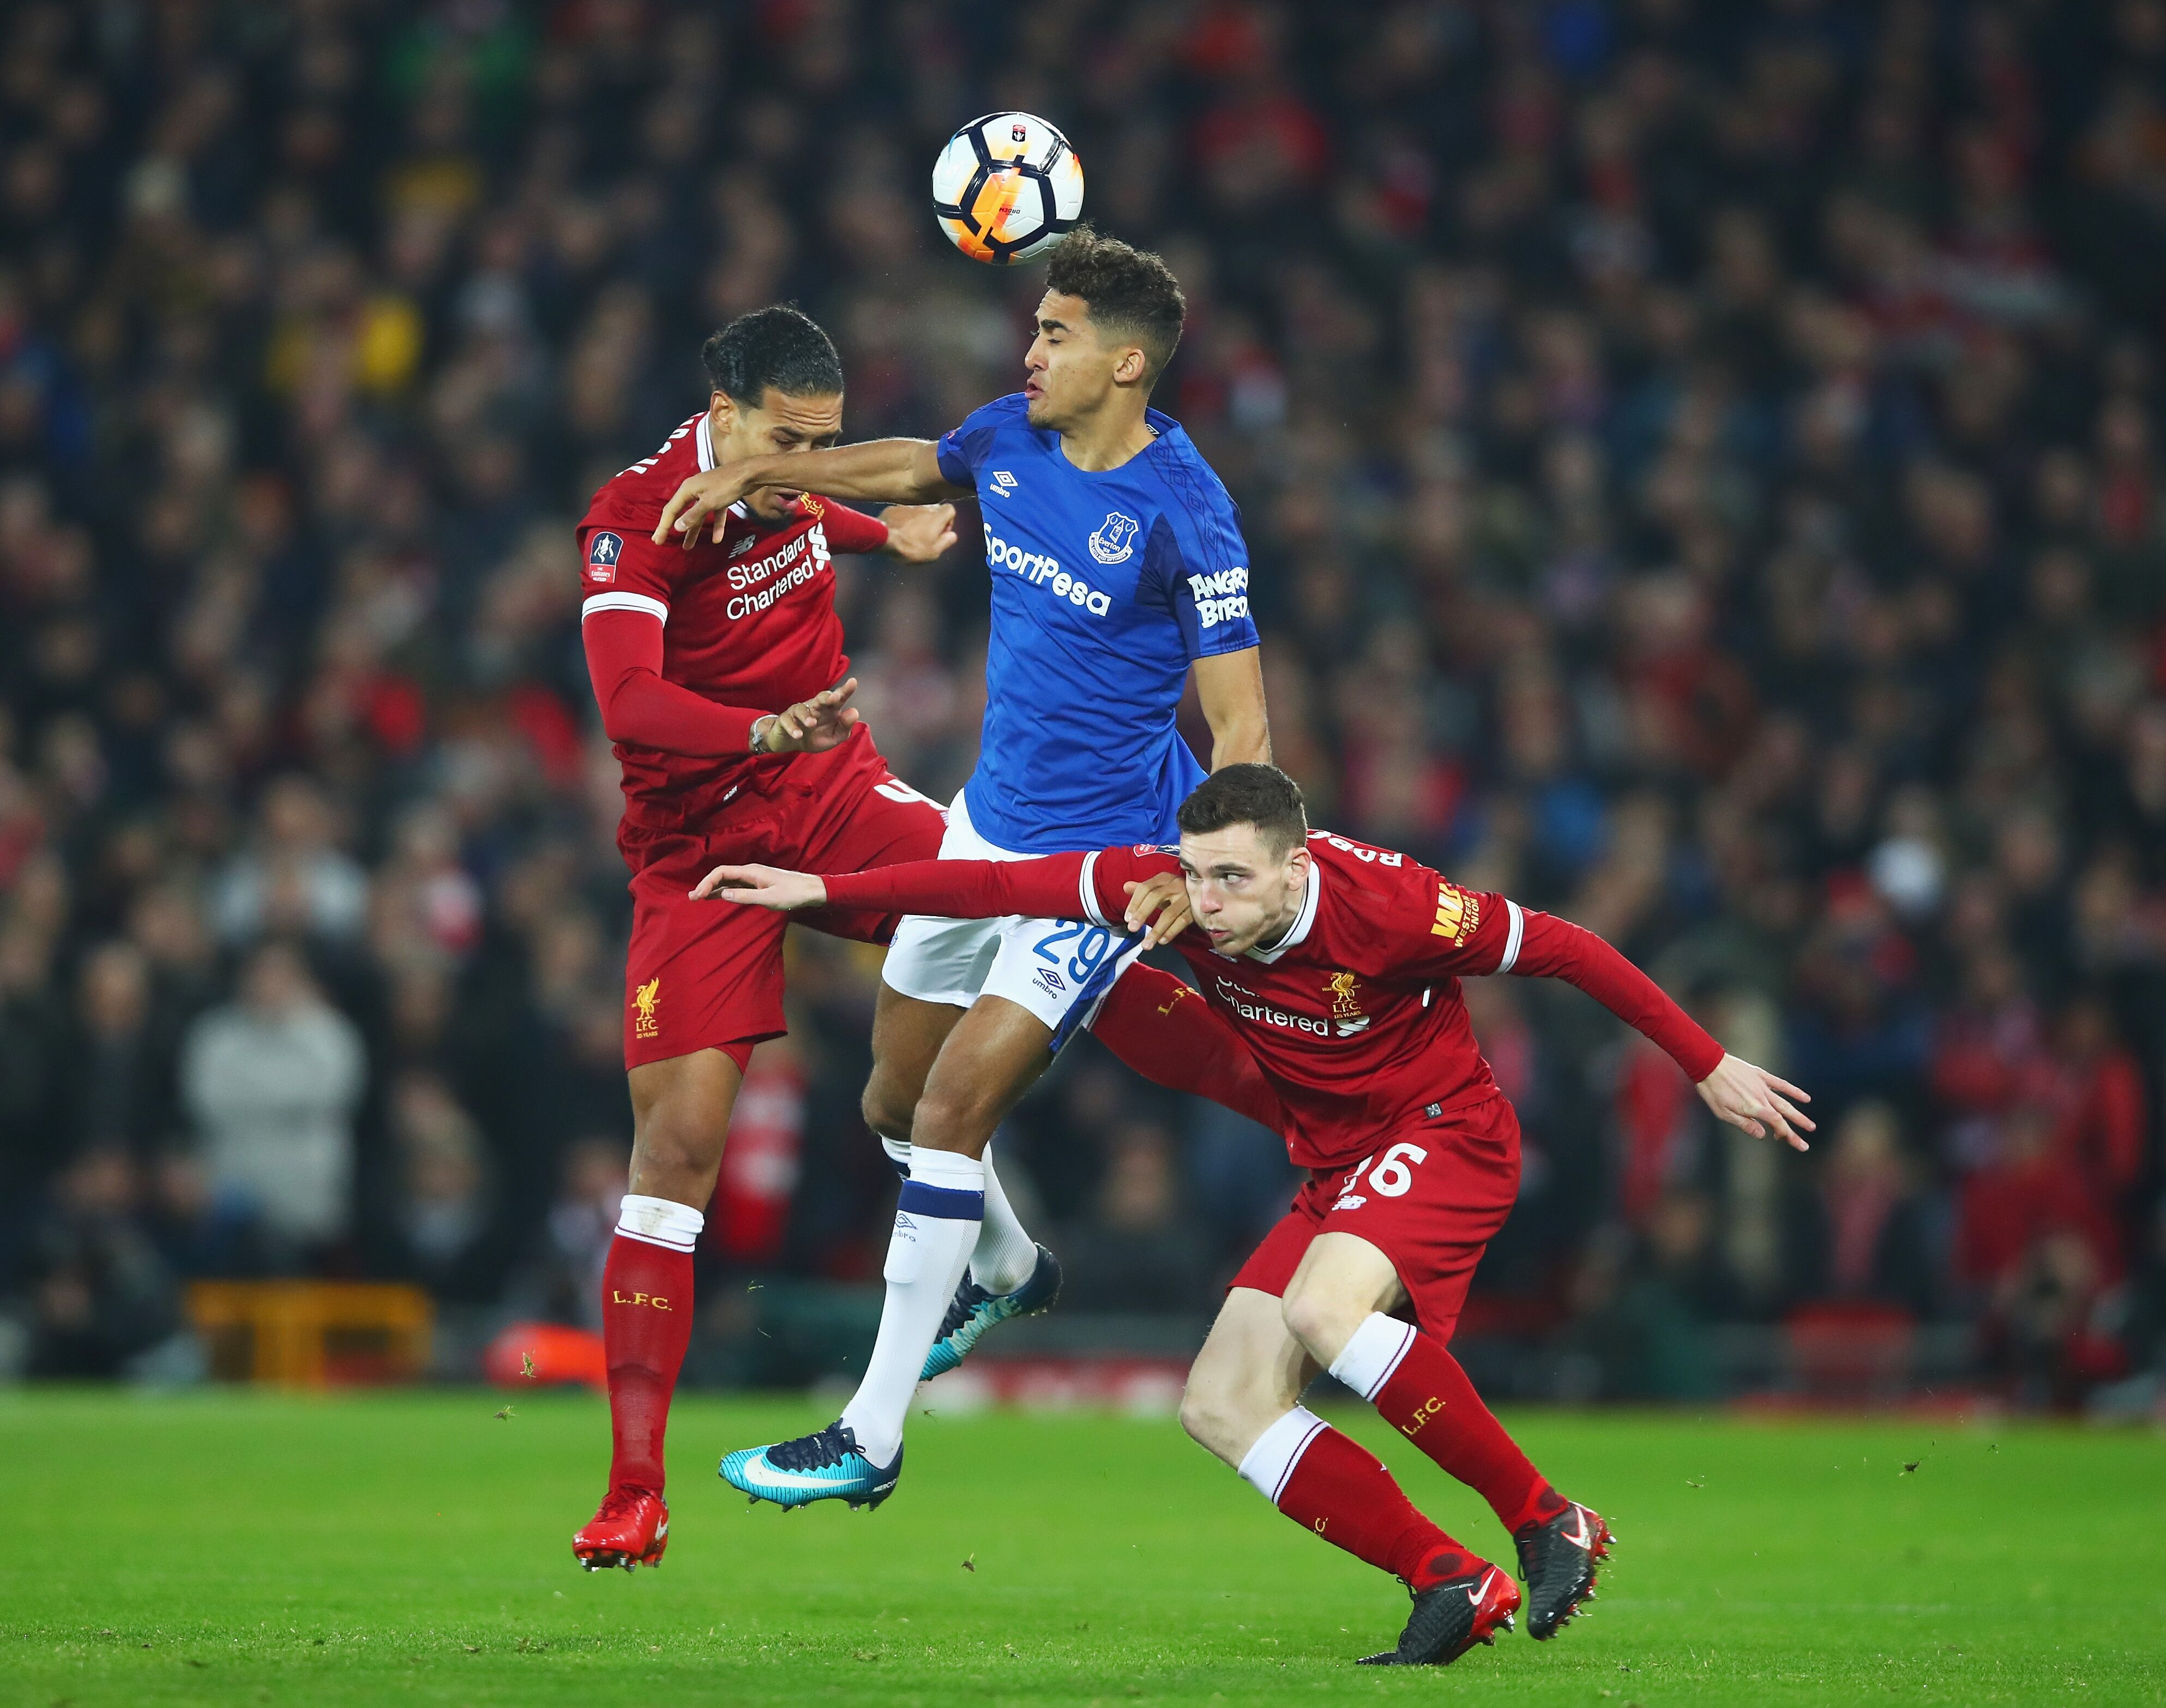 901598110-liverpool-v-everton-the-emirates-fa-cup-third-round.jpg